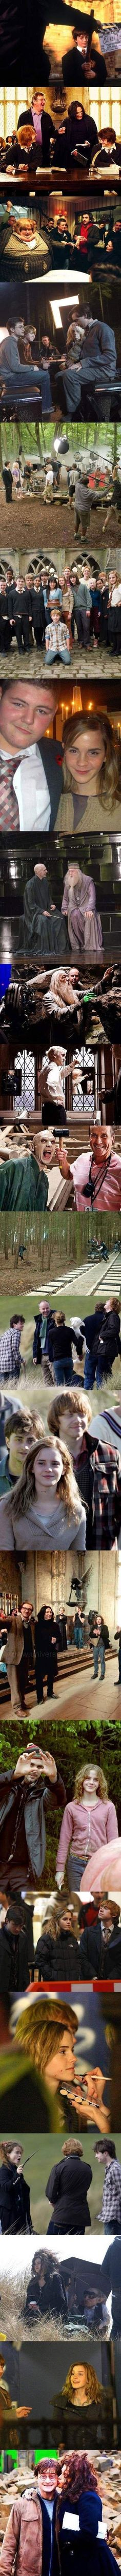 Behind the scenes of Harry Potter.